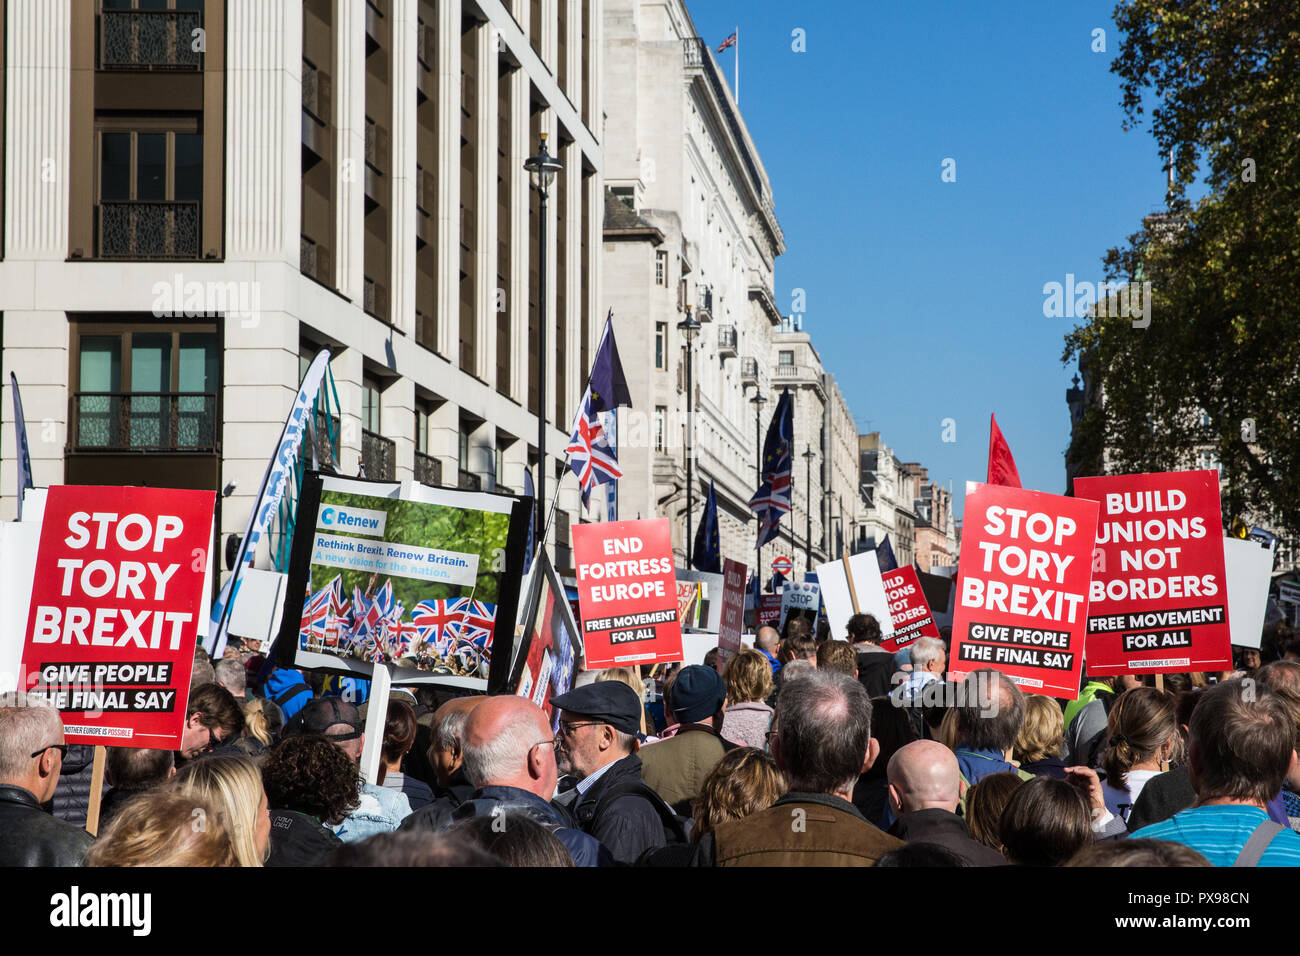 London, UK. 20th October, 2018. Hundreds of thousands of people, led by young people who were unable to vote in the Brexit referendum in 2016, take part in the People's Vote March for the Future to demand a vote on the final Brexit deal. The People's Vote is a grassroots campaign supported by Open Britain, European Movement UK, Britain for Europe, Scientists for EU, Healthier In, Our Future Our Choice, For Our Future's Sake, Wales For Europe and InFacts. Credit: Mark Kerrison/Alamy Live News - Stock Image